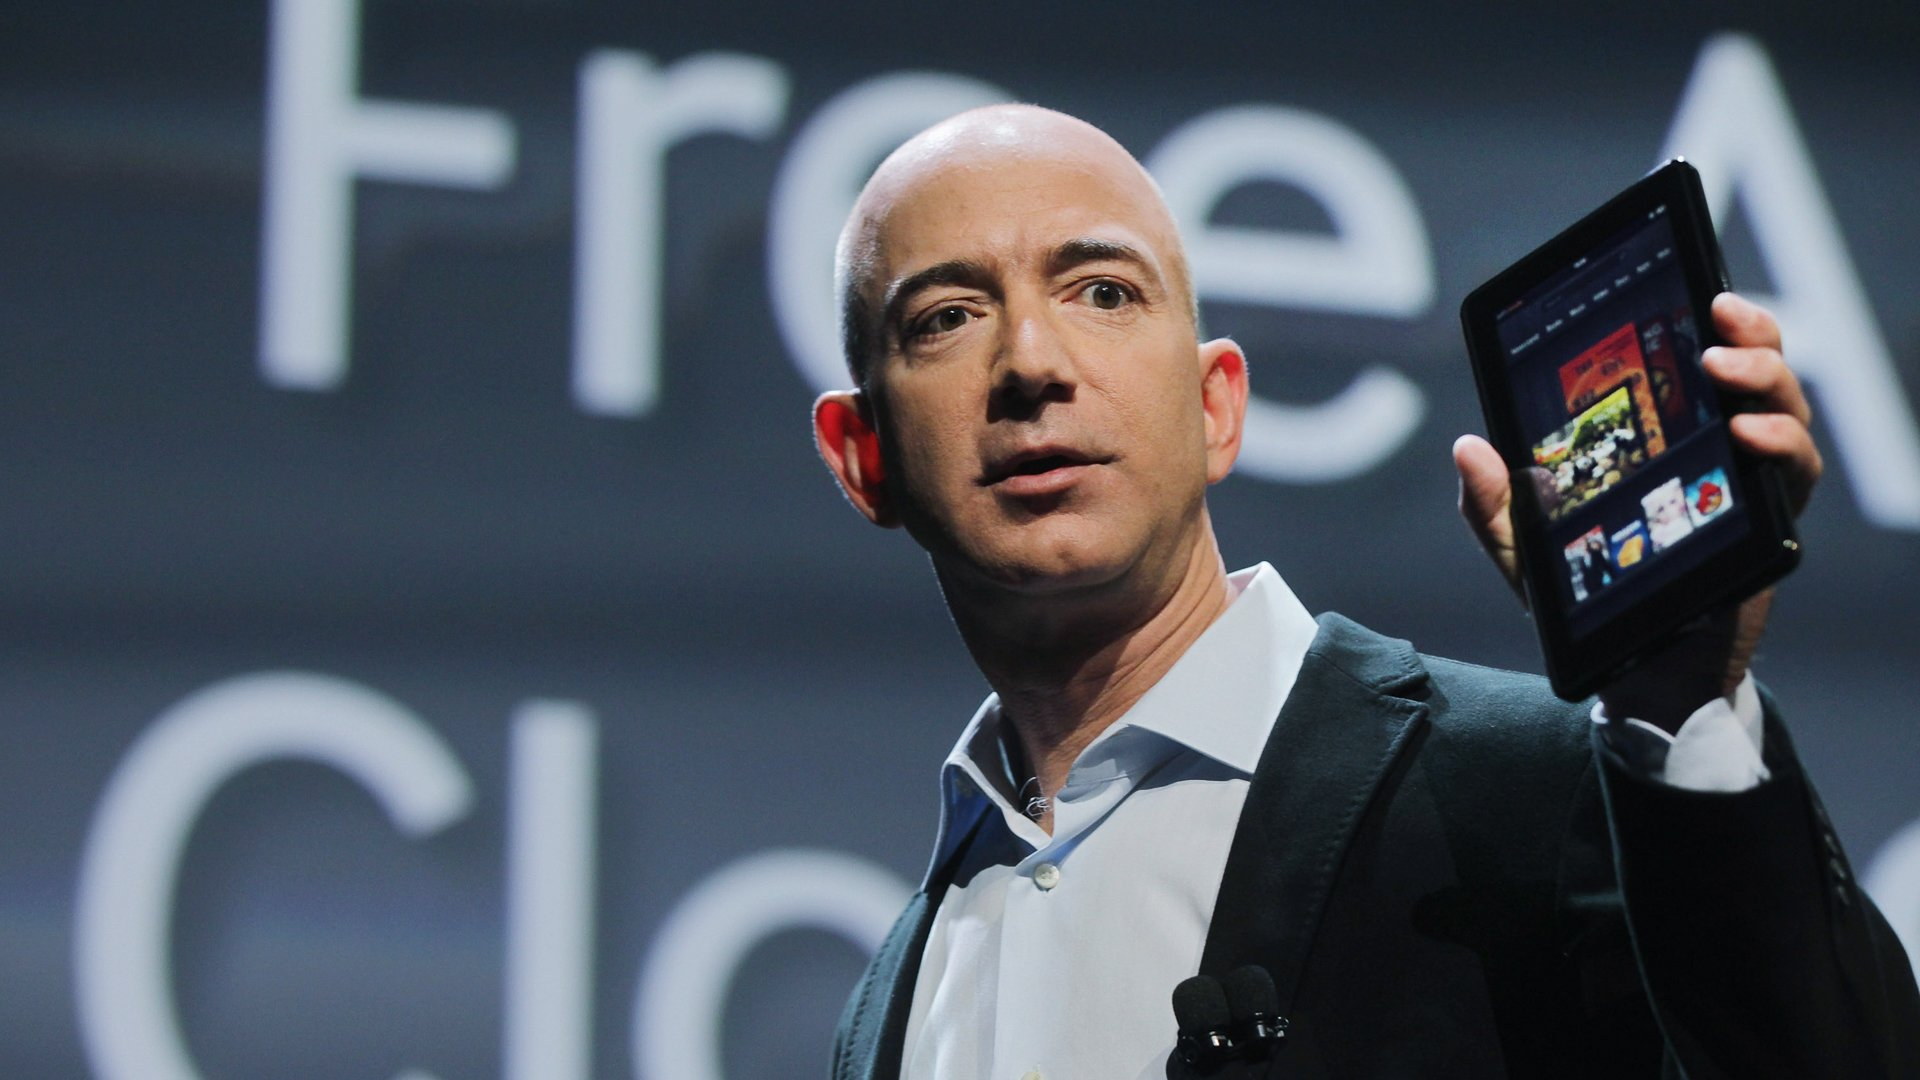 Jeff Bezos Has Stepped Down as Amazon CEO. How Much Is the Iconic Billionaire Worth?